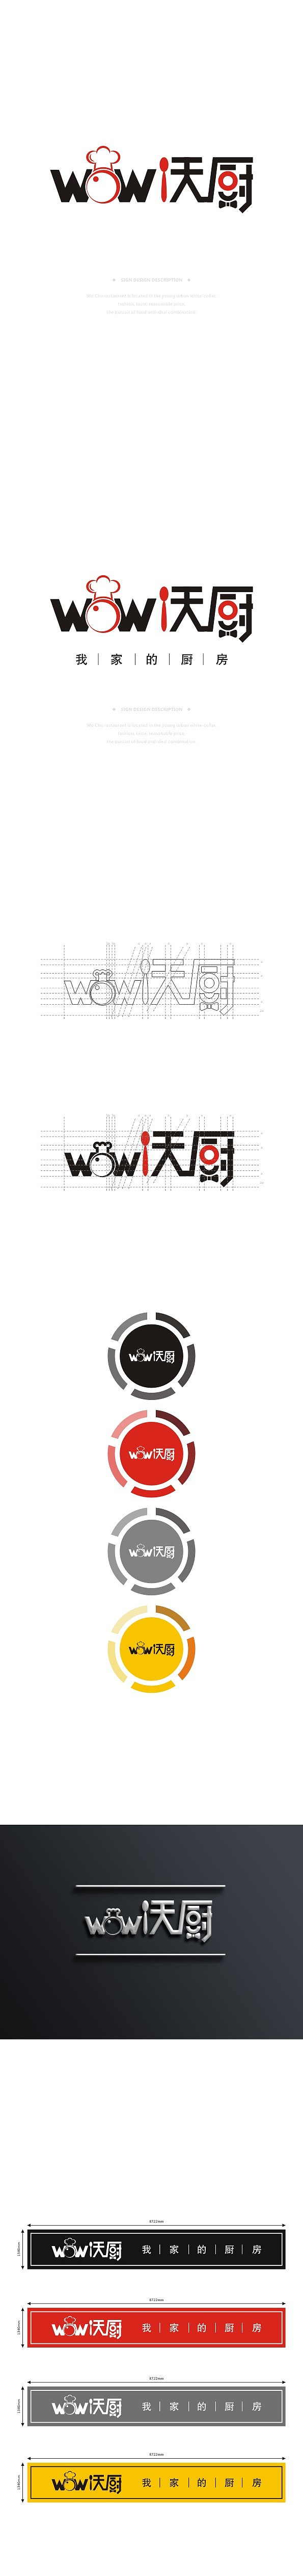 kitchen signs for home island table with stools wow 沃厨 我家的厨房 平面 标志 宜湘 原创作品 站酷 zcool